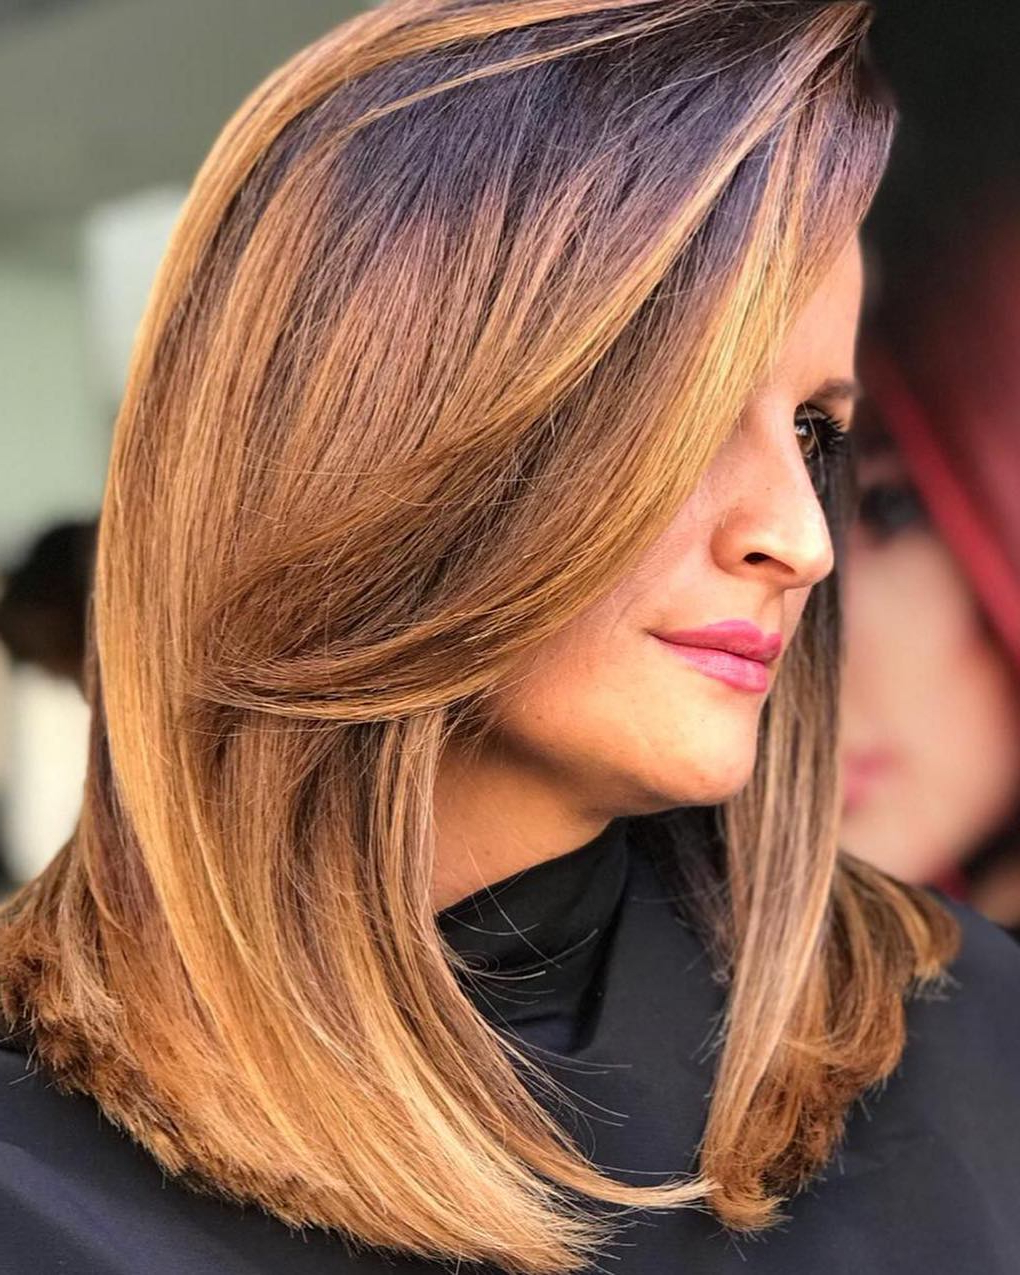 The Most Instagrammable Hairstyles With Bangs In 2019 In Widely Used Shiny Brunette Shag Haircuts For Long Hair (View 14 of 20)